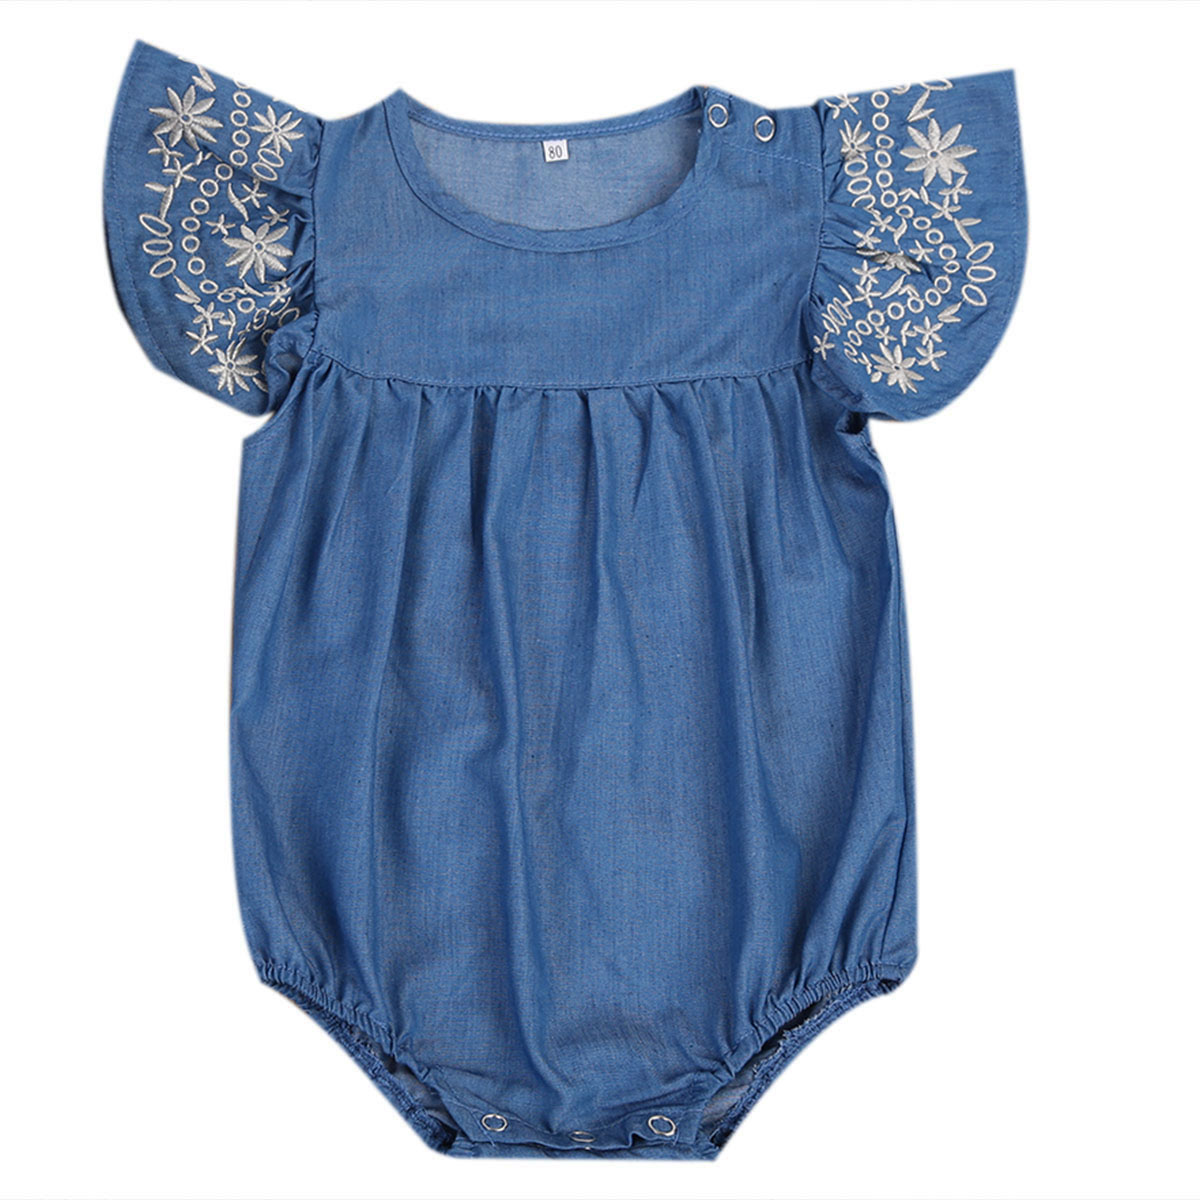 Summer Denim Romper 2017 Newborn Baby Girl Romper Ruffled Sleeve Jumpsuit Playsuit Outfits Sunsuit Clothes Set ...